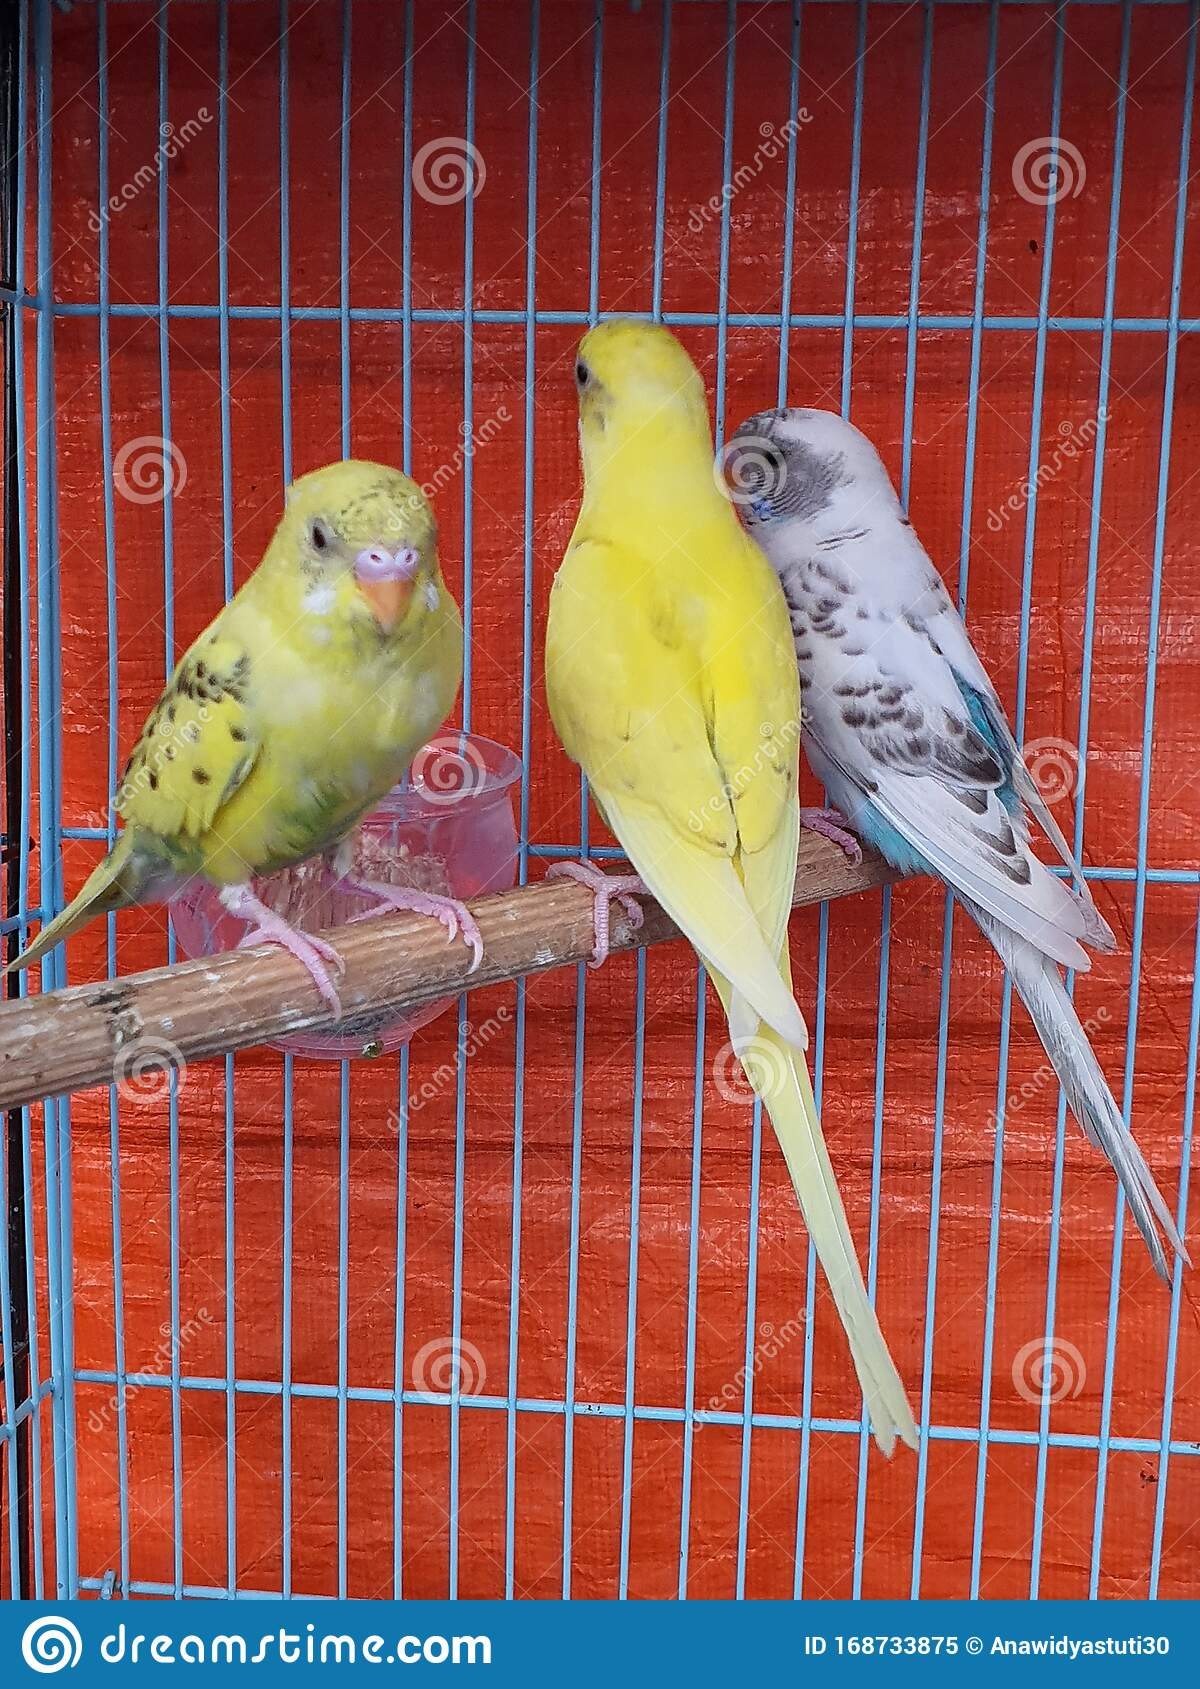 Cute And Beautiful Birds Stock Image Image Of Cage 168733875